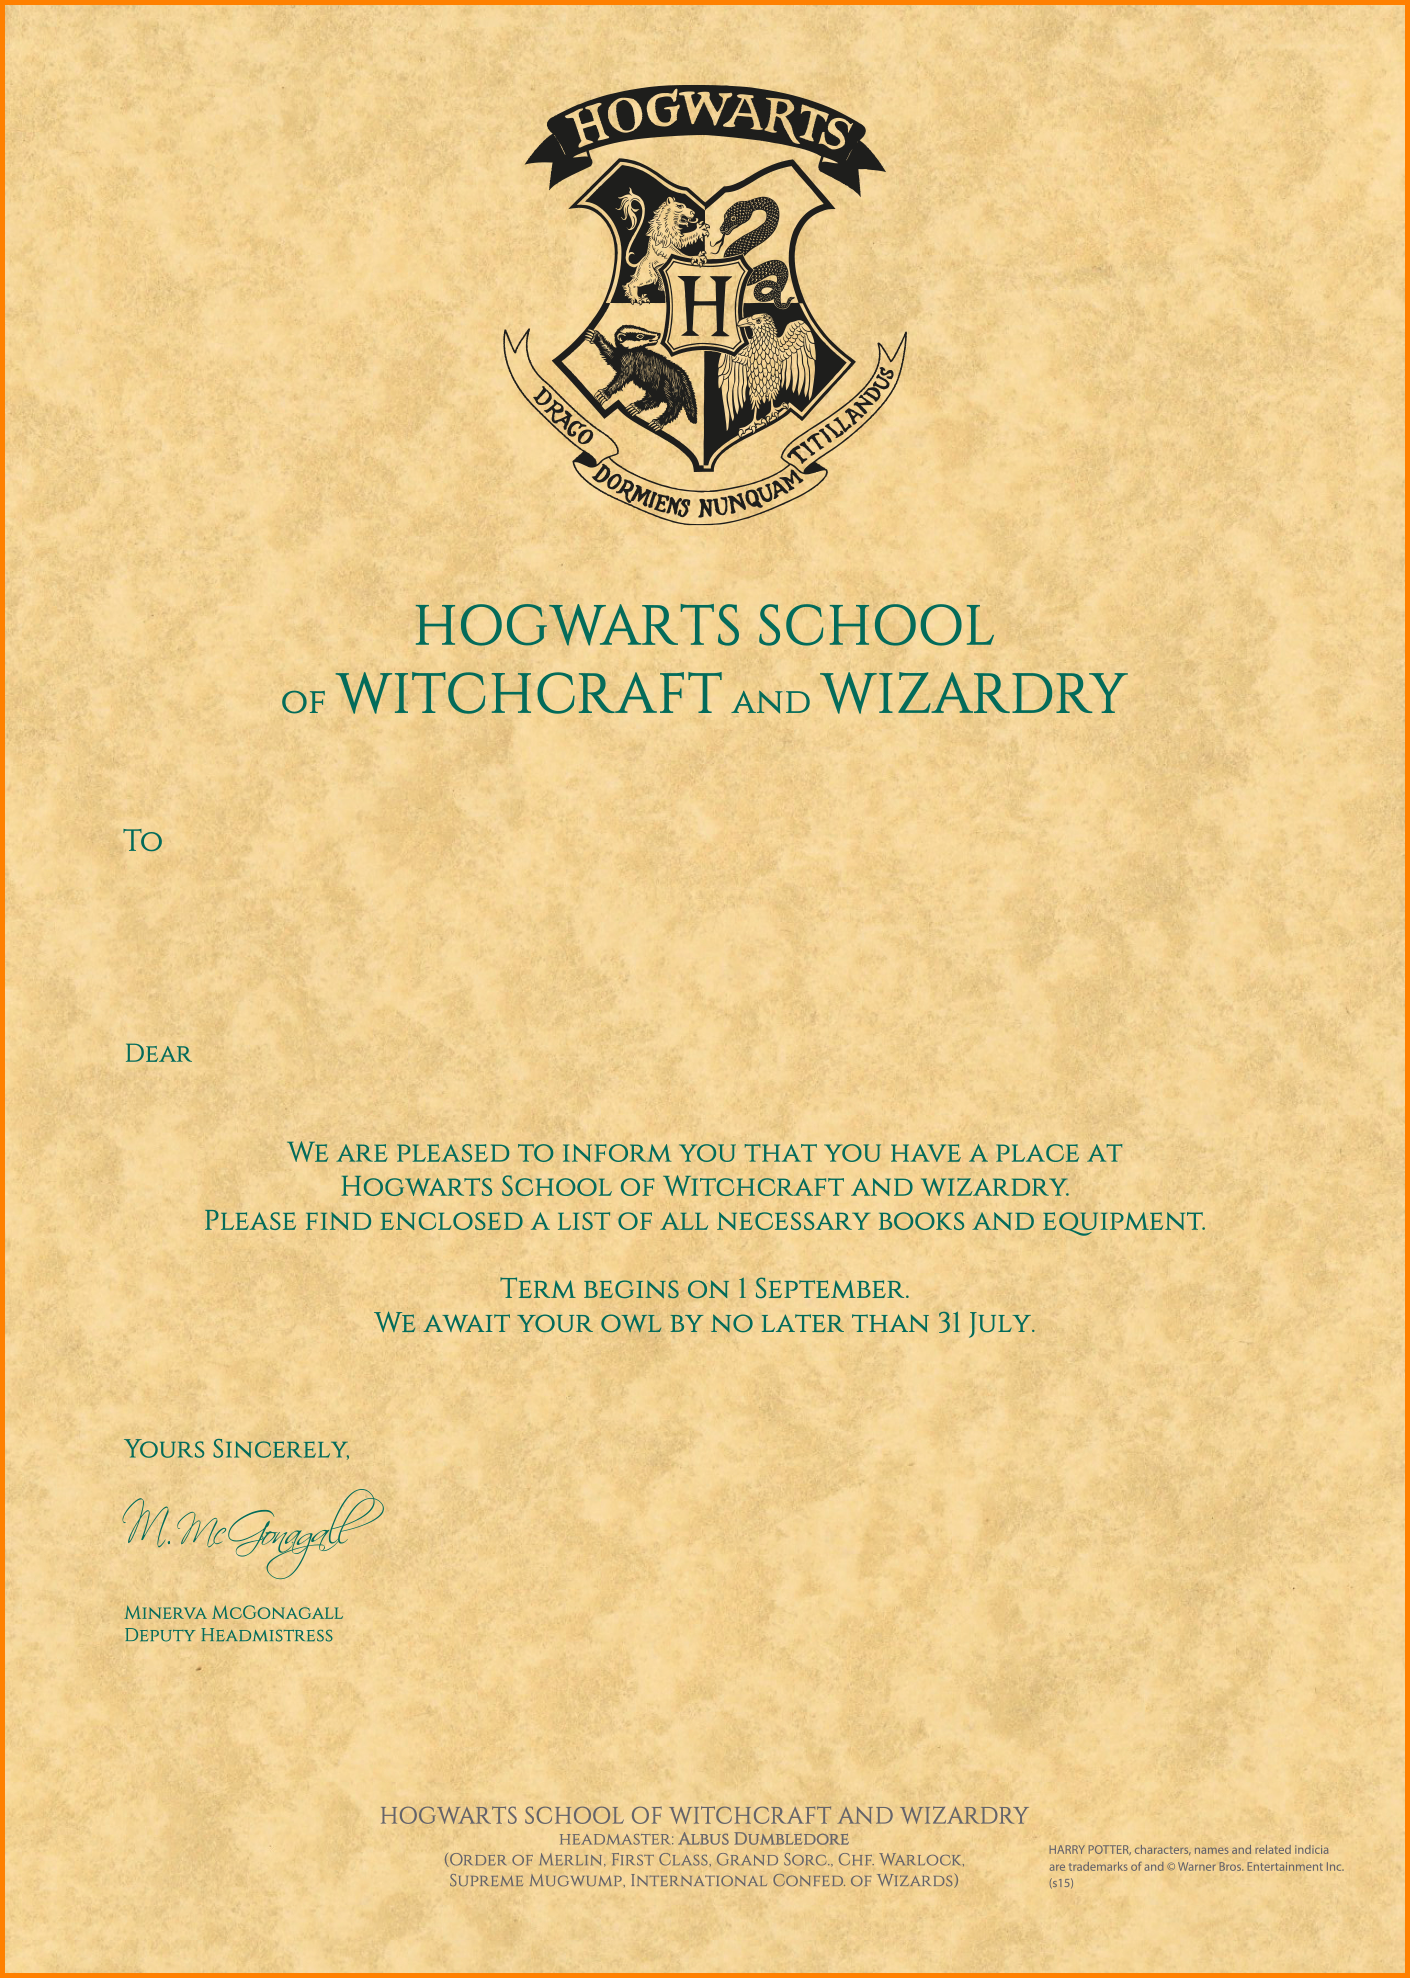 photo relating to Hogwarts Acceptance Letter Envelope Template Printable called 13+ harry potter hogwarts letter estimate templates